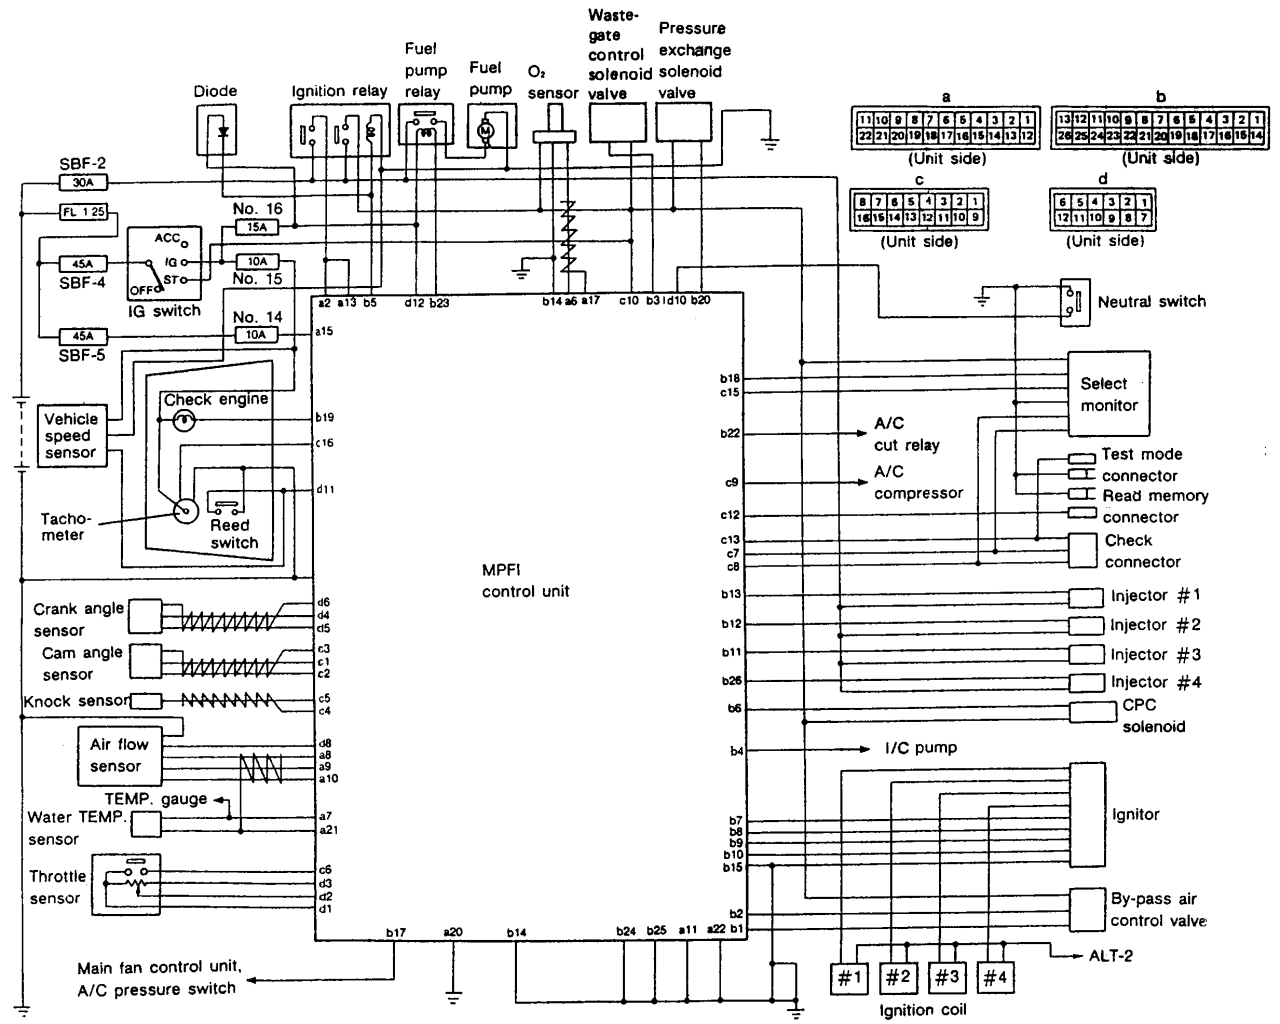 Enjoyable Subaru Impreza 2 0I Engine Diagrams Basic Electronics Wiring Diagram Wiring Digital Resources Anistprontobusorg